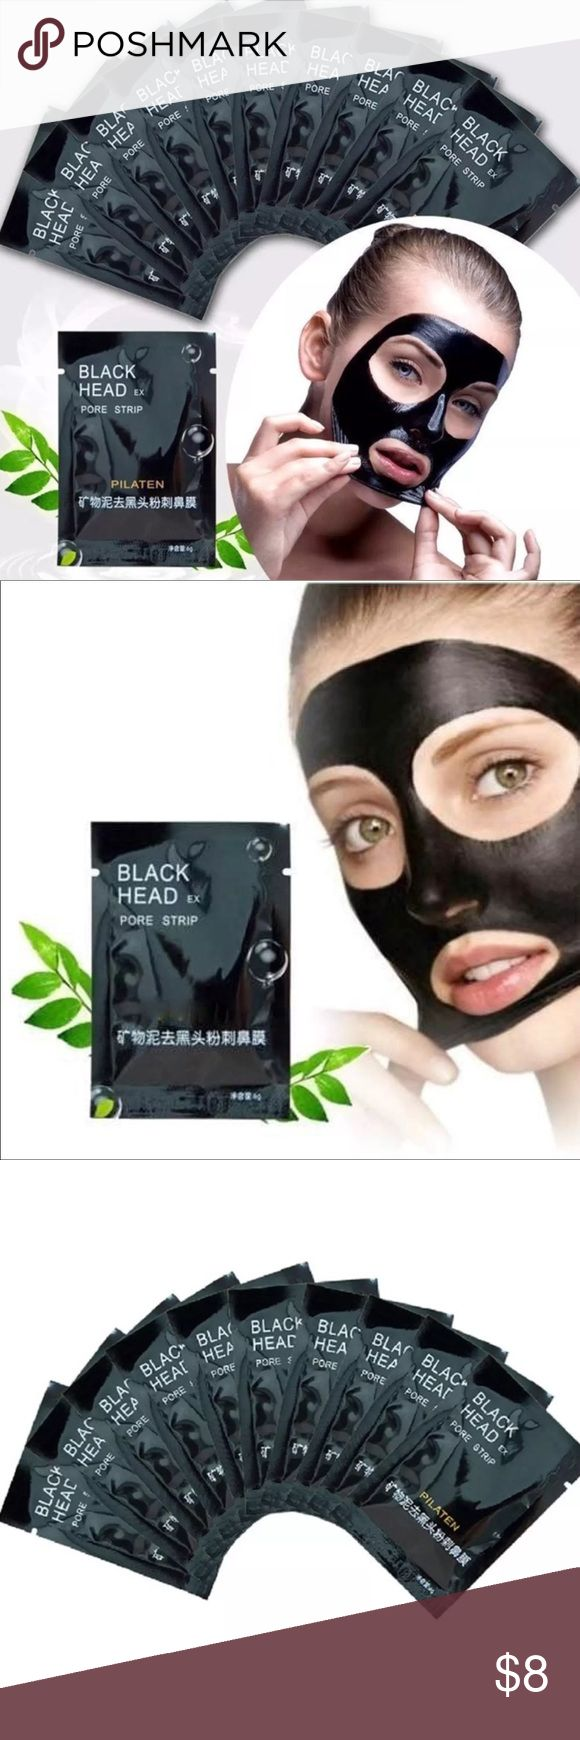 New Face Mask 10 pk Pilaten Blackhead Remover, deep cleaning black mud mask Haw to use: 1.Thoroughly wash your face, making sure that it is free of any creams, lotions or make up. 2. Dry hands, then open the packet and apply the mask evenly over the nose area. 3. Let the mask dry for 20-30 minutes. When  Completely dry peel the mask off from the bottom up. If there is any residue , rinse off with water. 4.Use 1-2 times a week. (Opened packet must be sealed with cellotape, otherwise product…